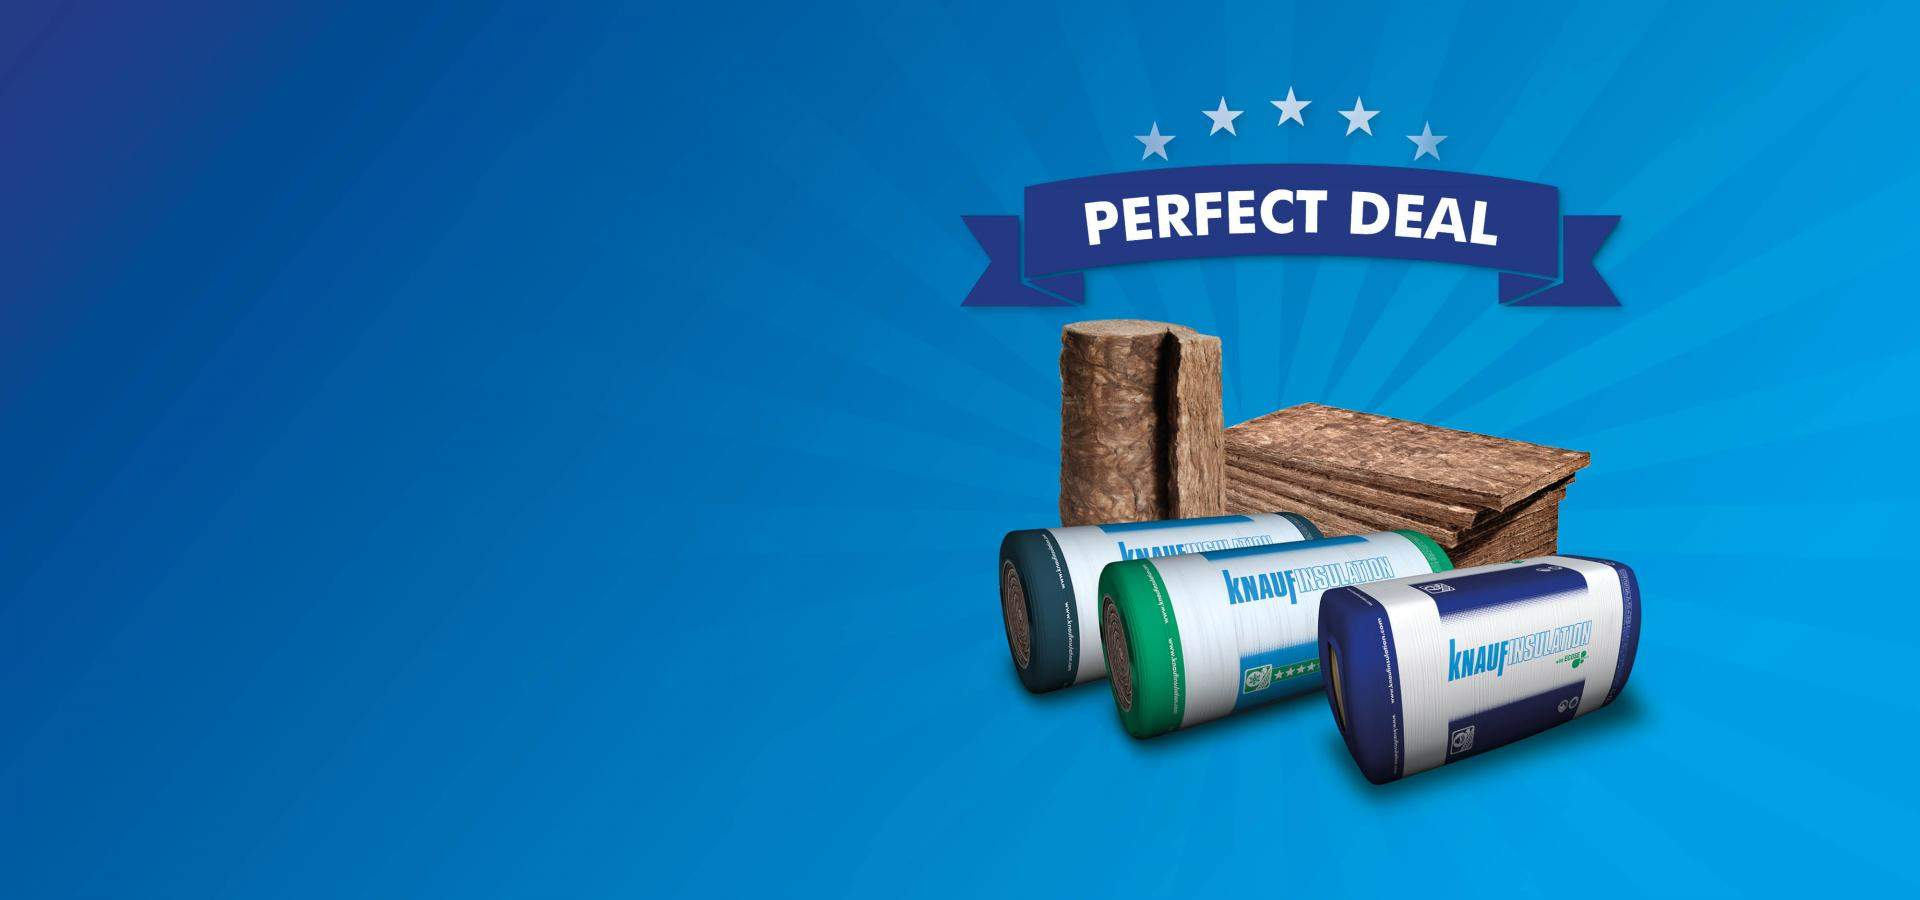 Perfect Deal Knauf